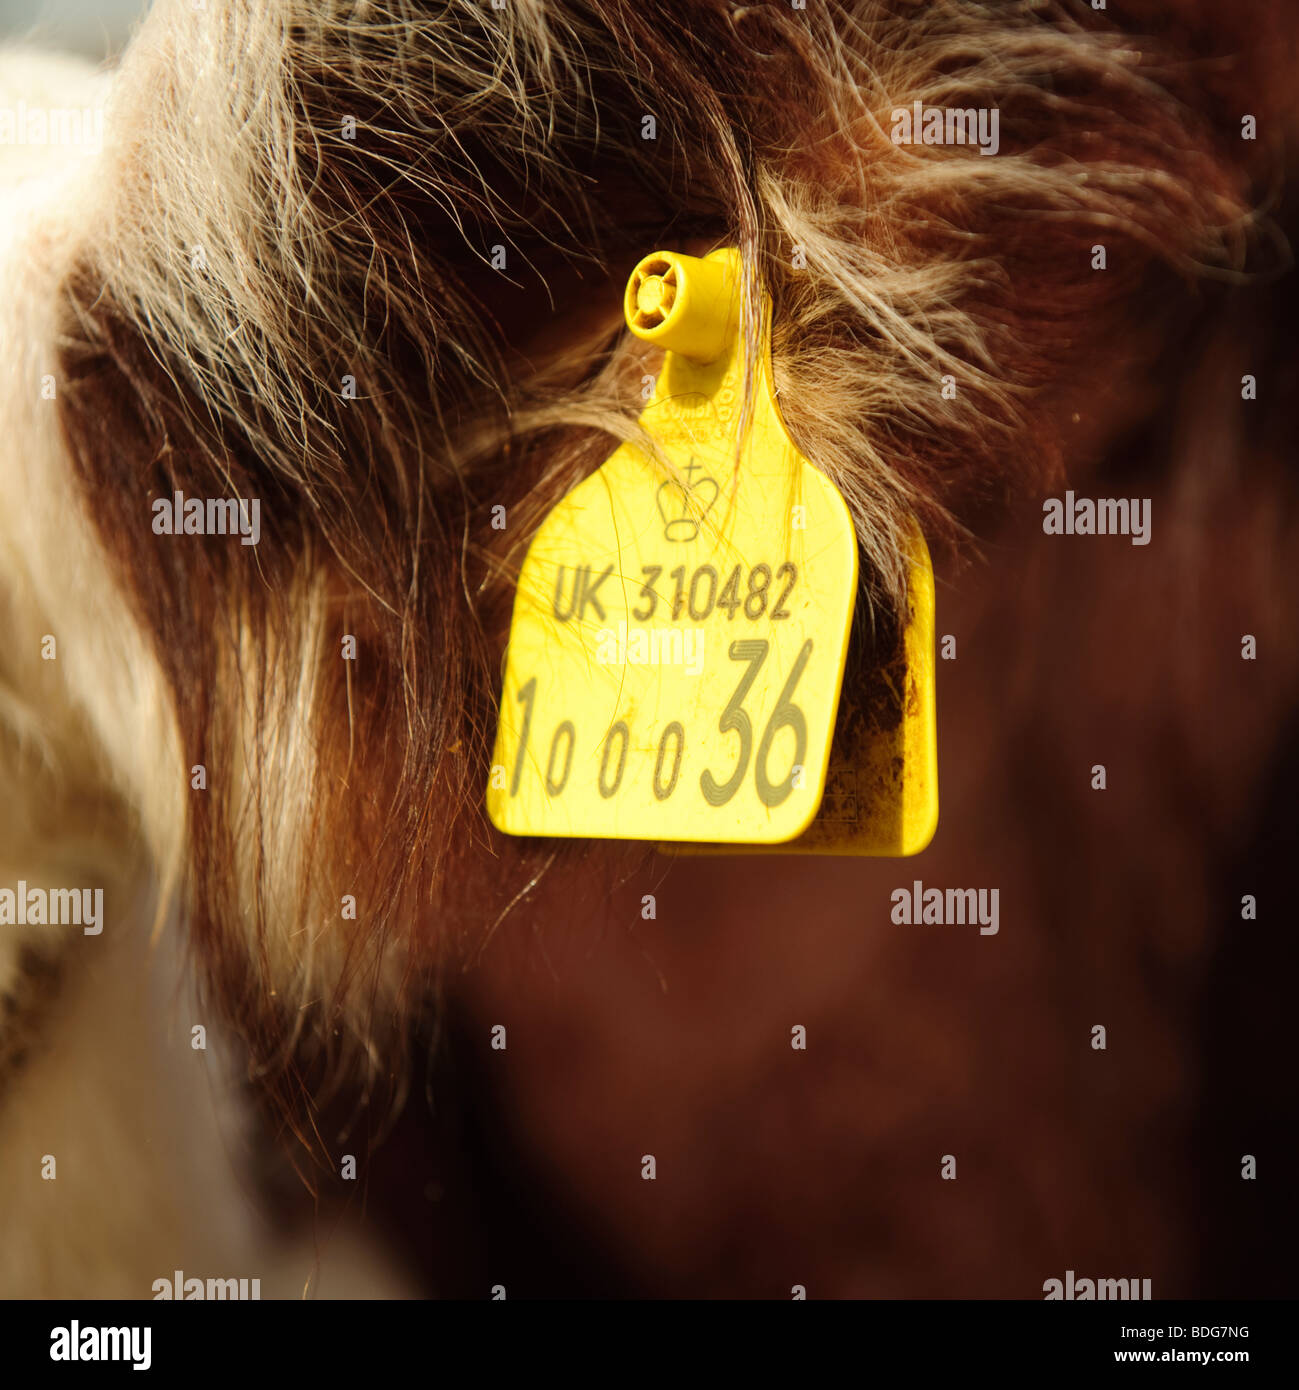 Yellow ear tag on a cow, UK - Stock Image